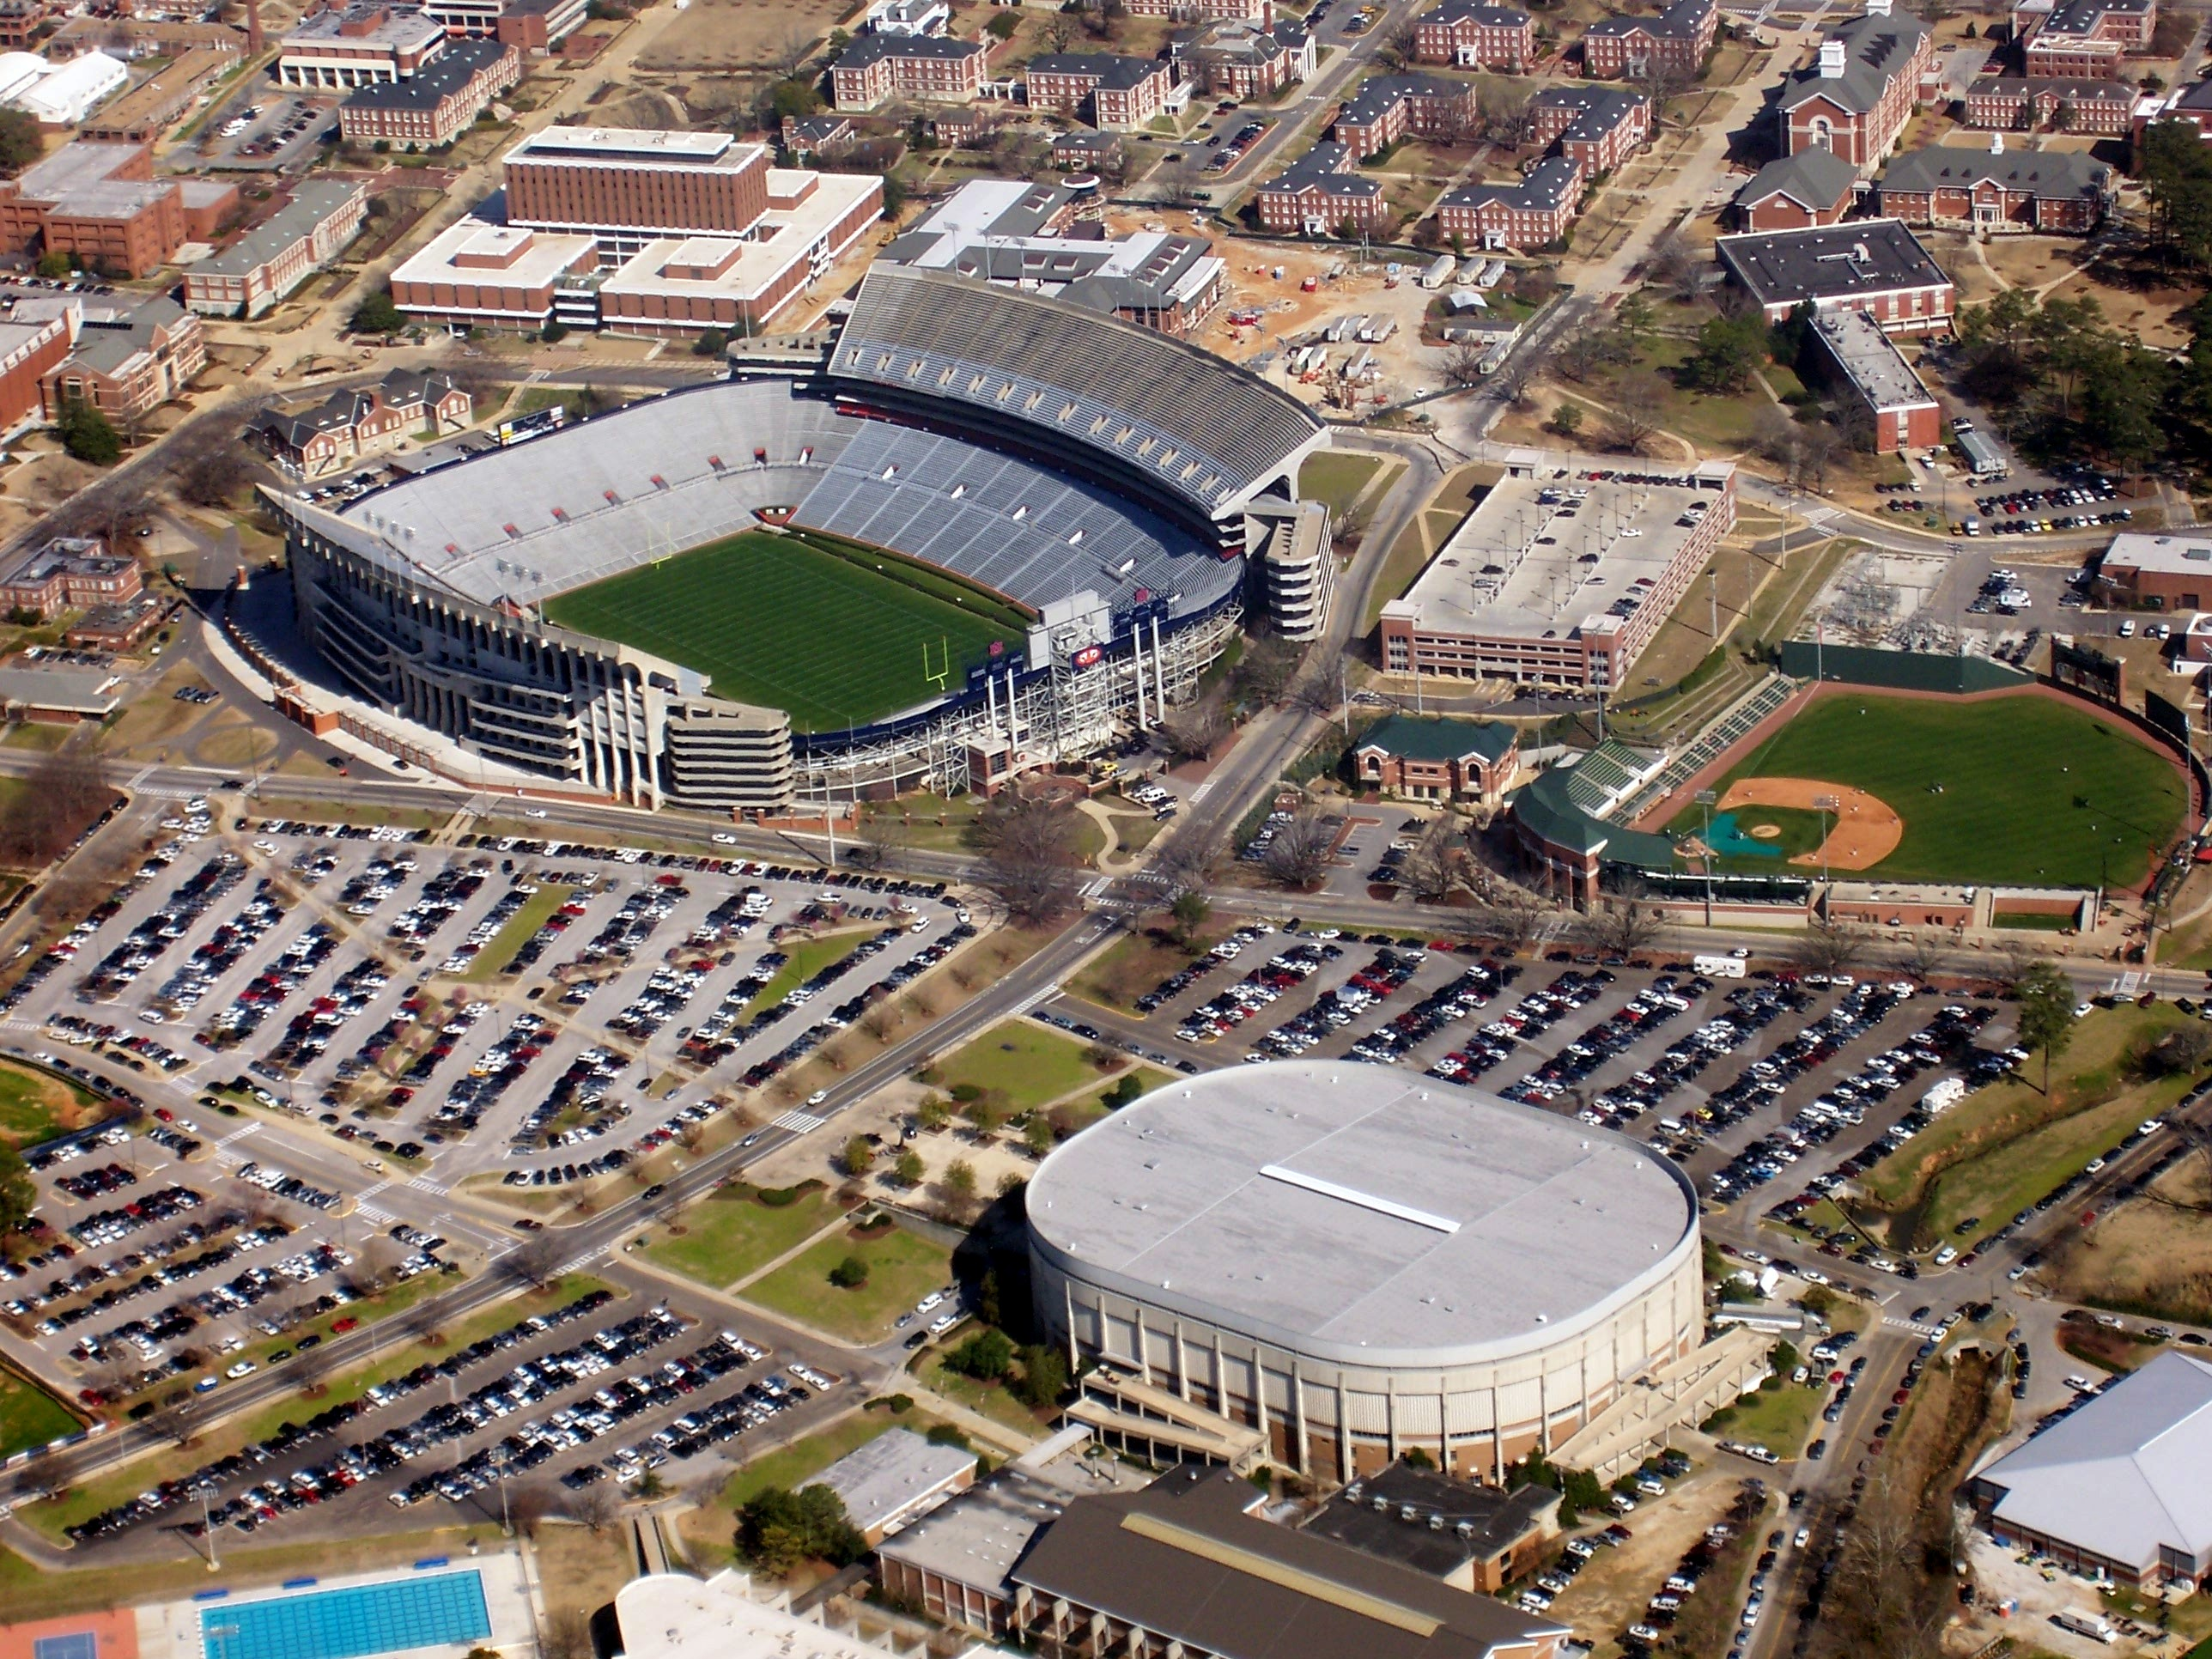 Jordan-Hare Stadium, Beard-Eaves-Memorial Coliseum, and Samford Stadium-Hitchcock Field at Plainsman Park on the Auburn University campus